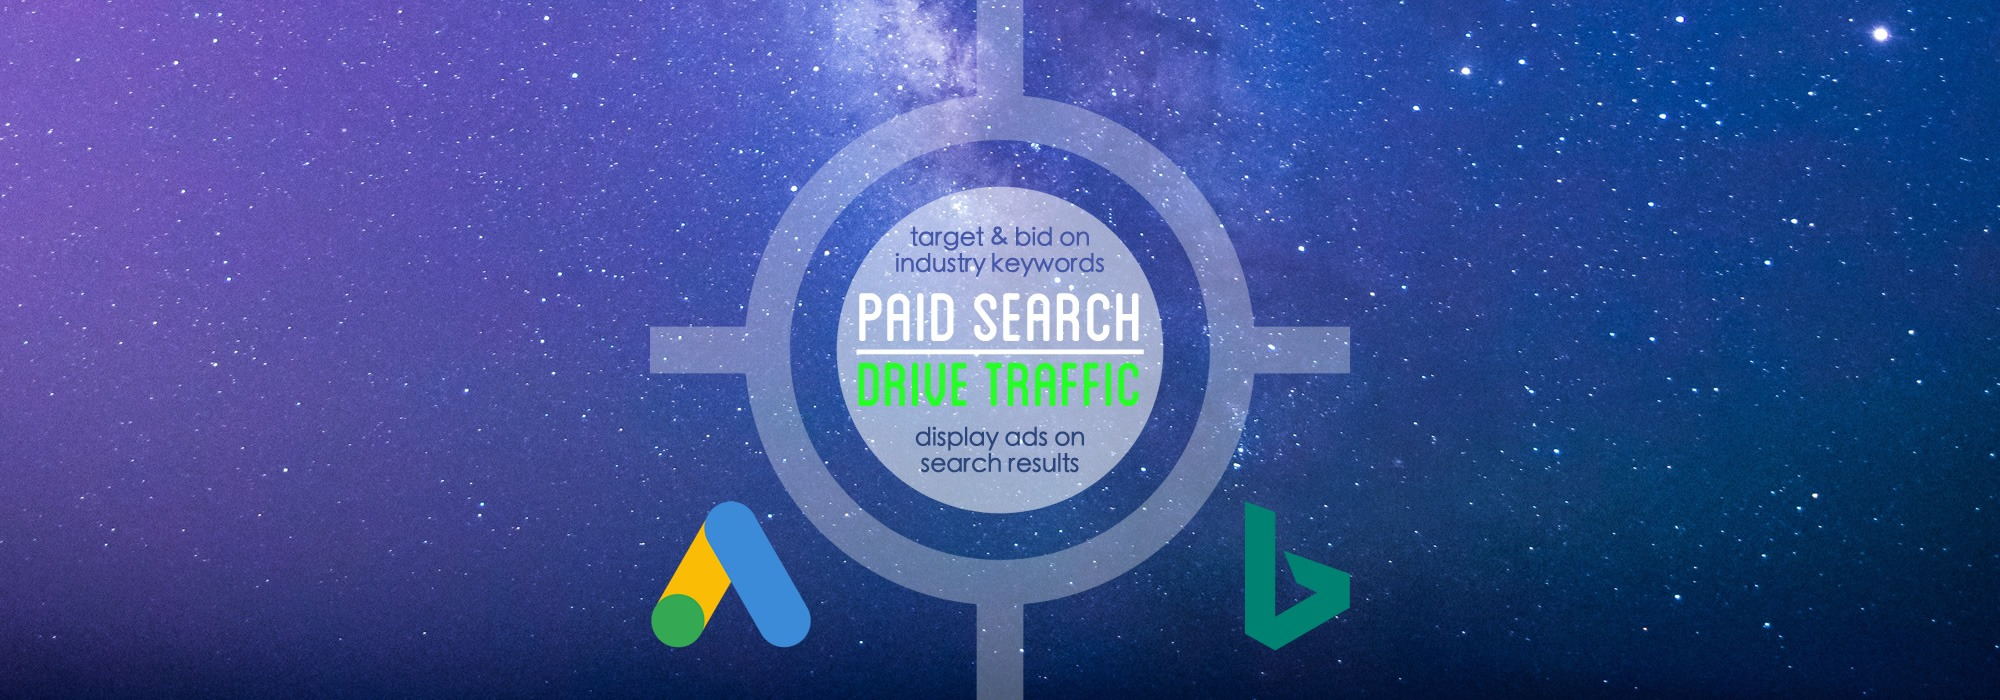 Paid Search - Google Adwords